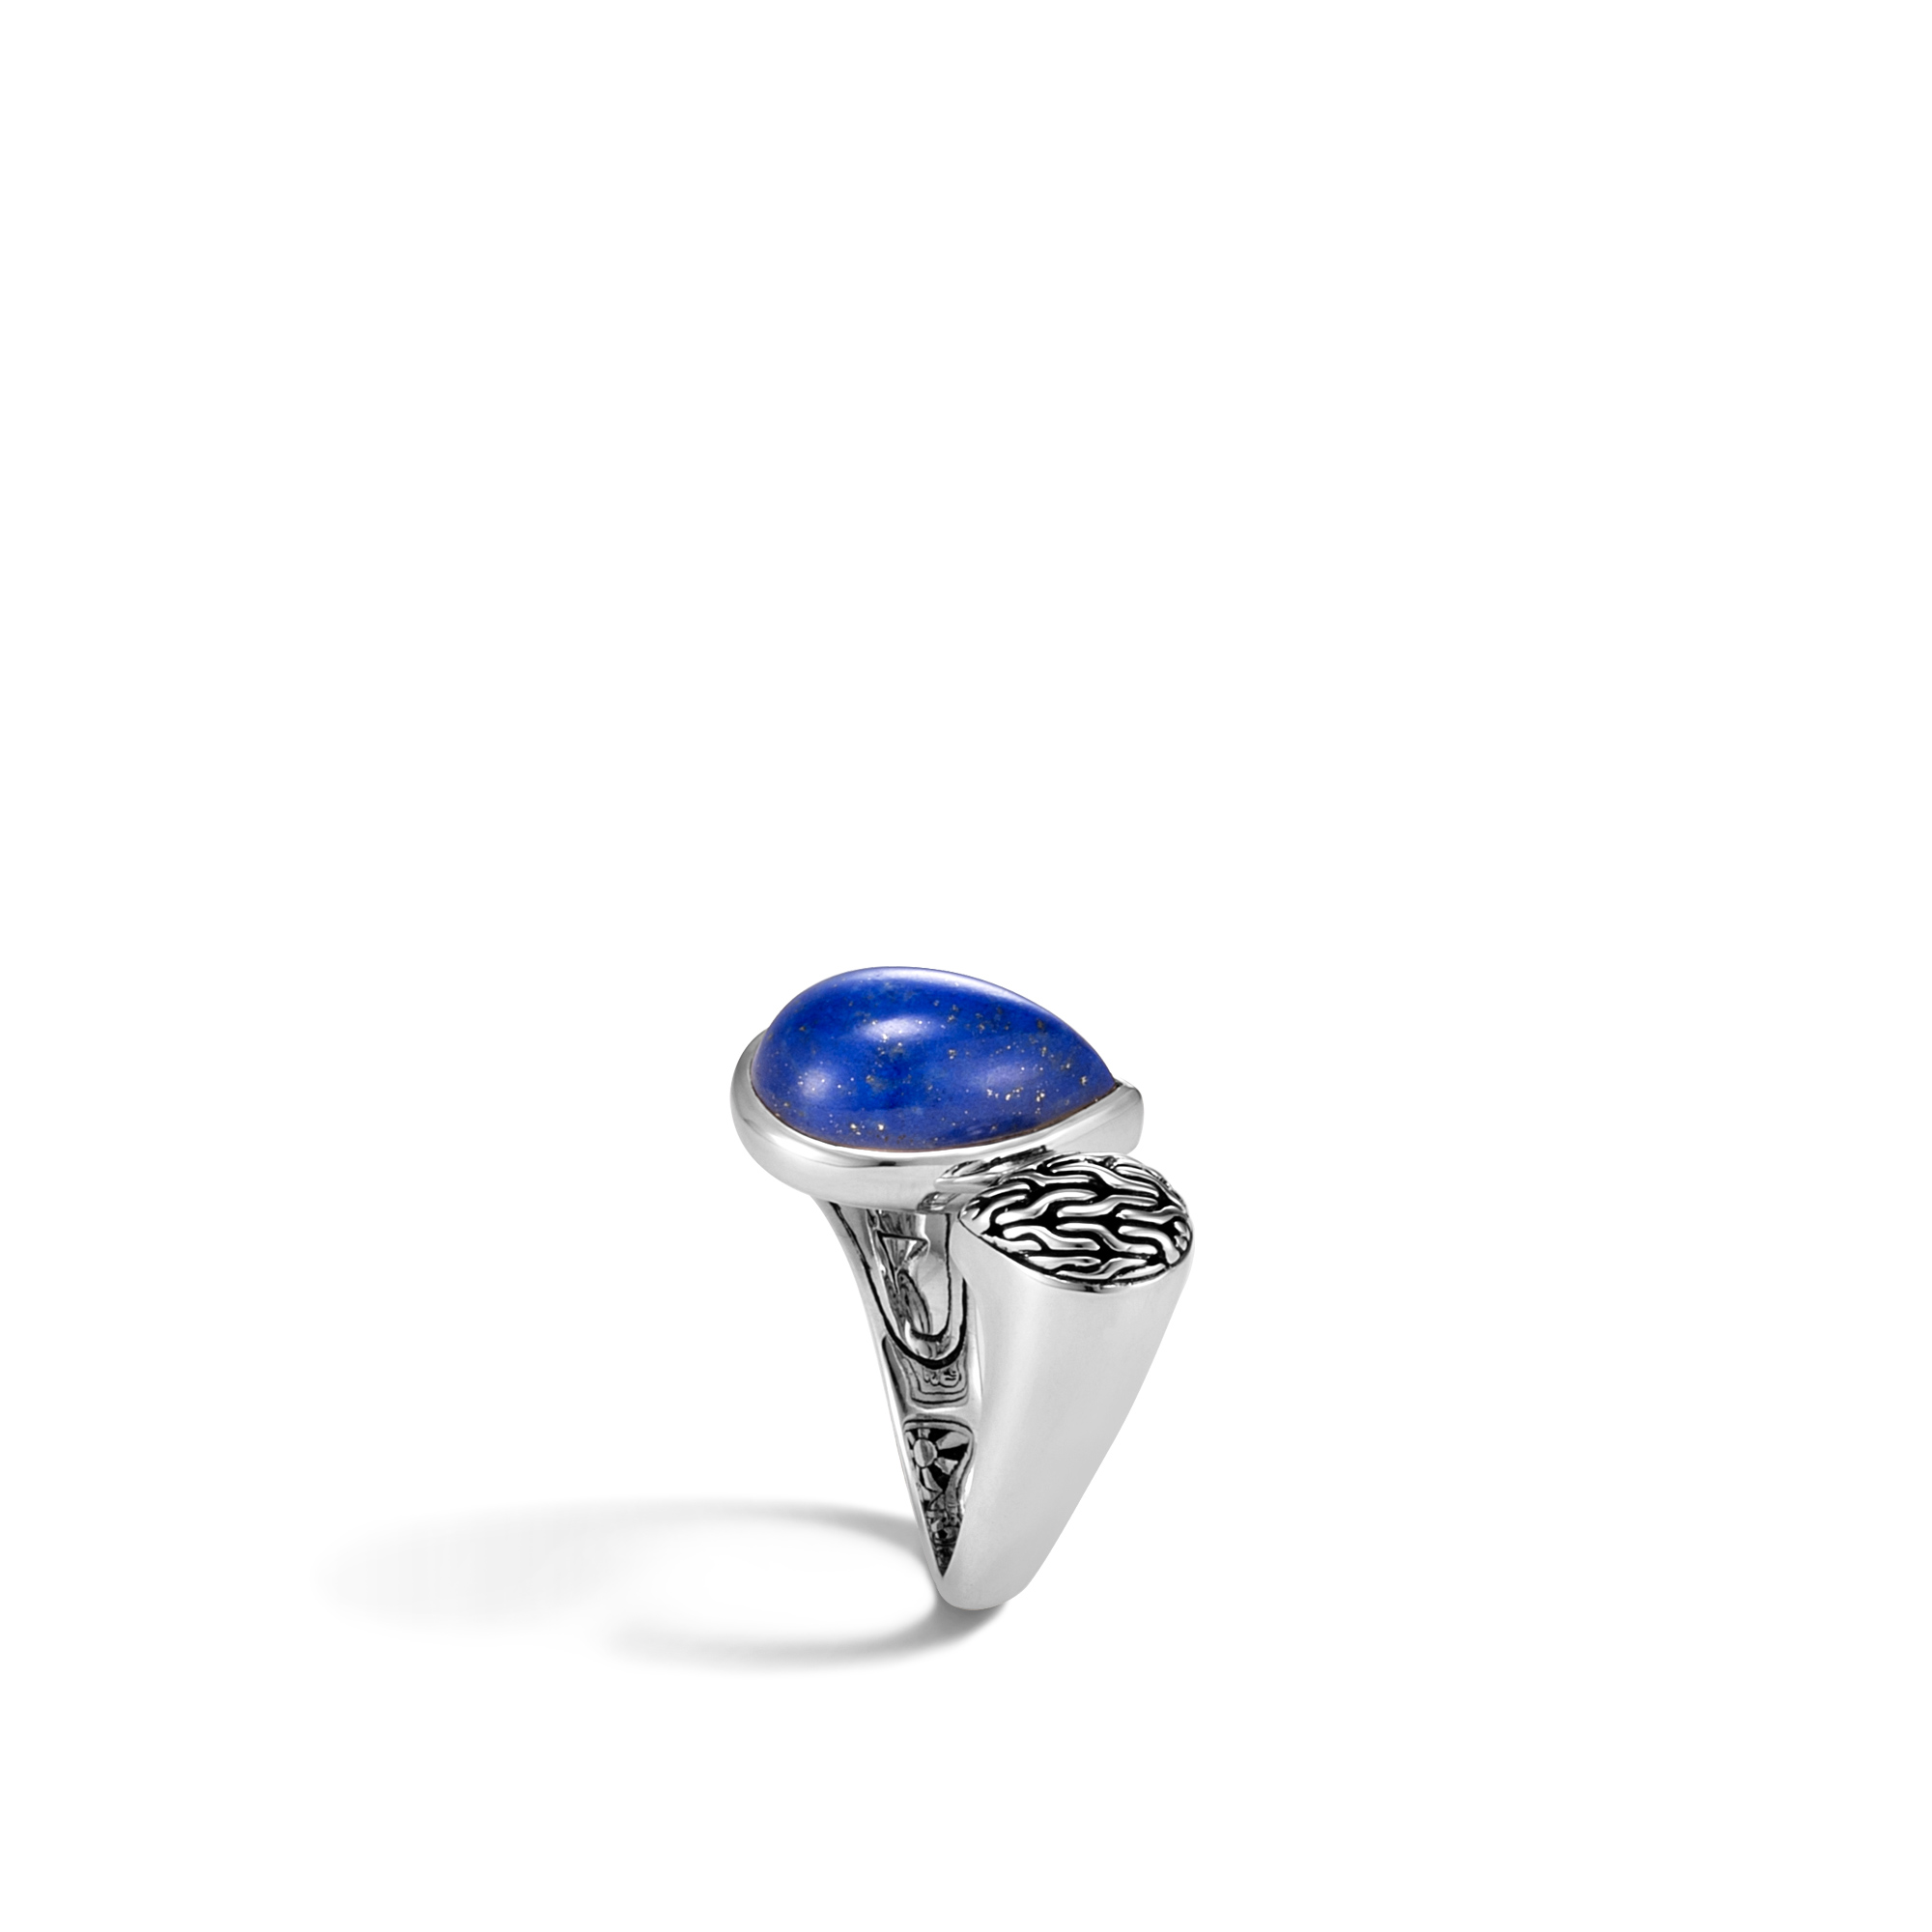 Classic Chain Bypass Ring in Silver with Gemstone, Lapis Lazuli, large